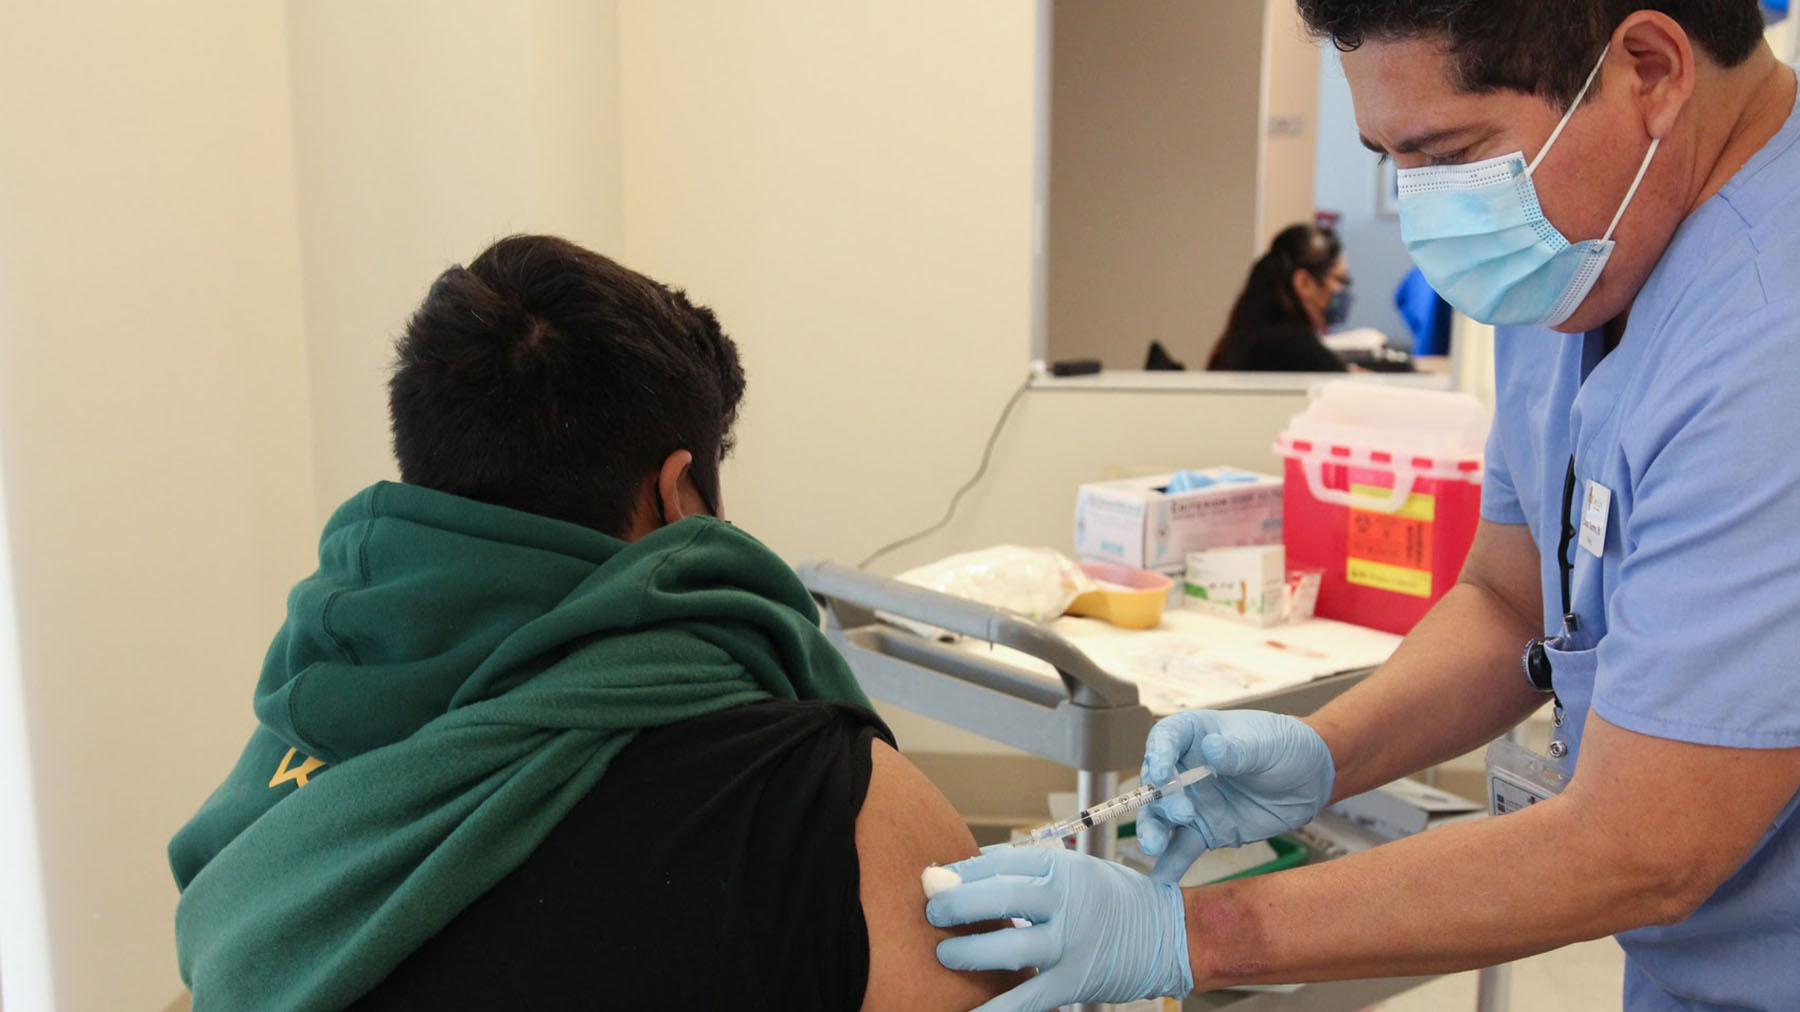 A provider administers a flu vaccine at the QueensCare Flu Clinic on November 9, 2020.(Noah Smith/Direct Relief)